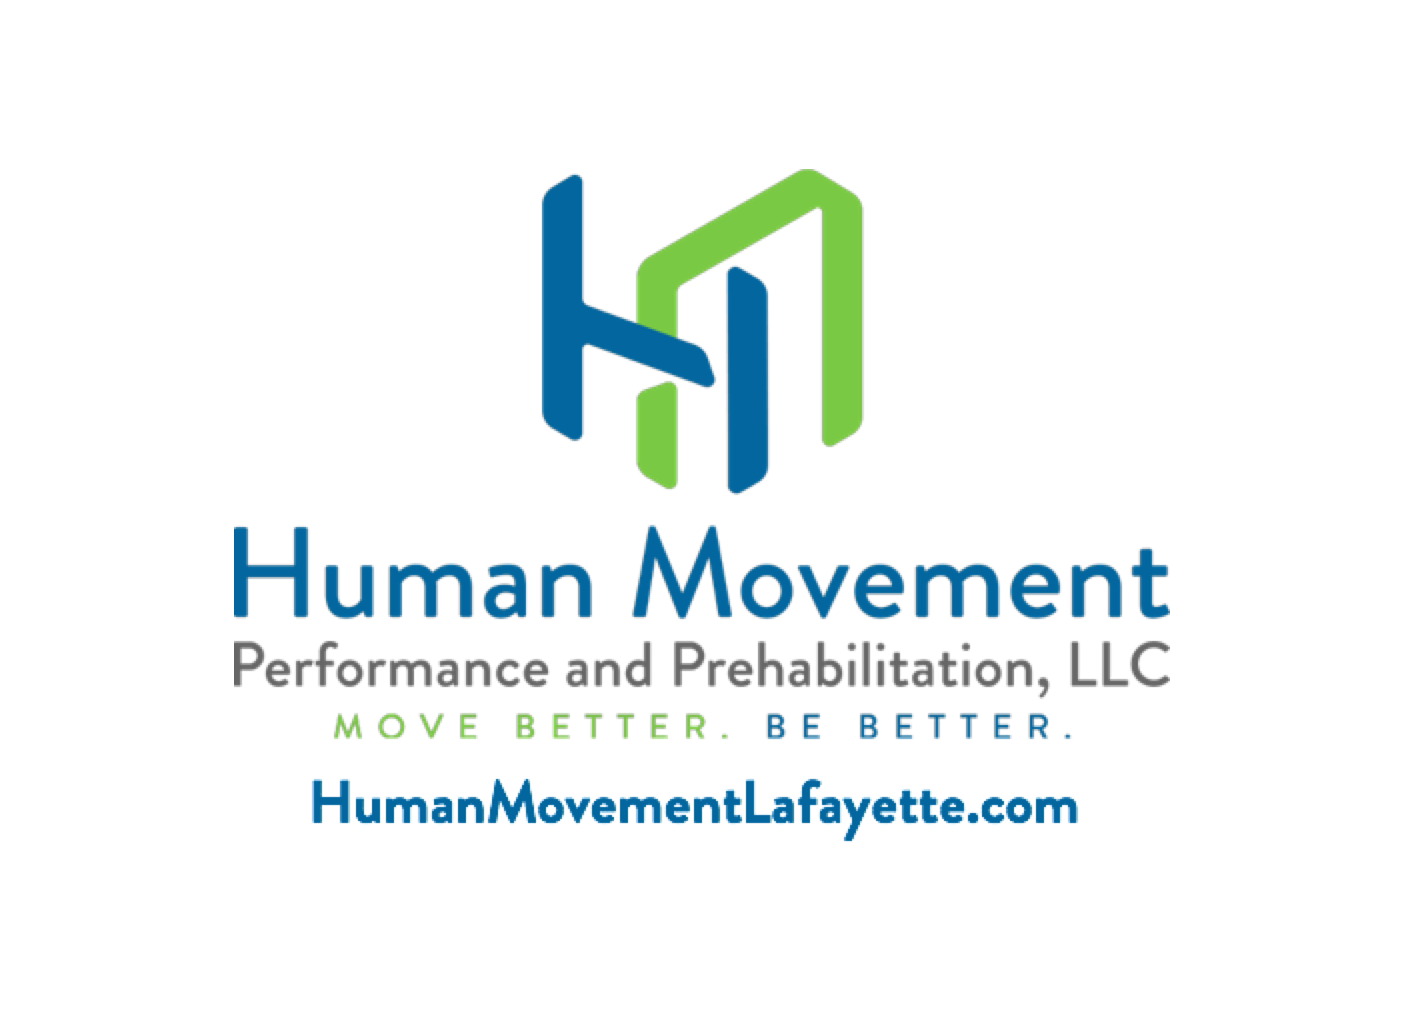 Human Movement Performance and Prehabilitation